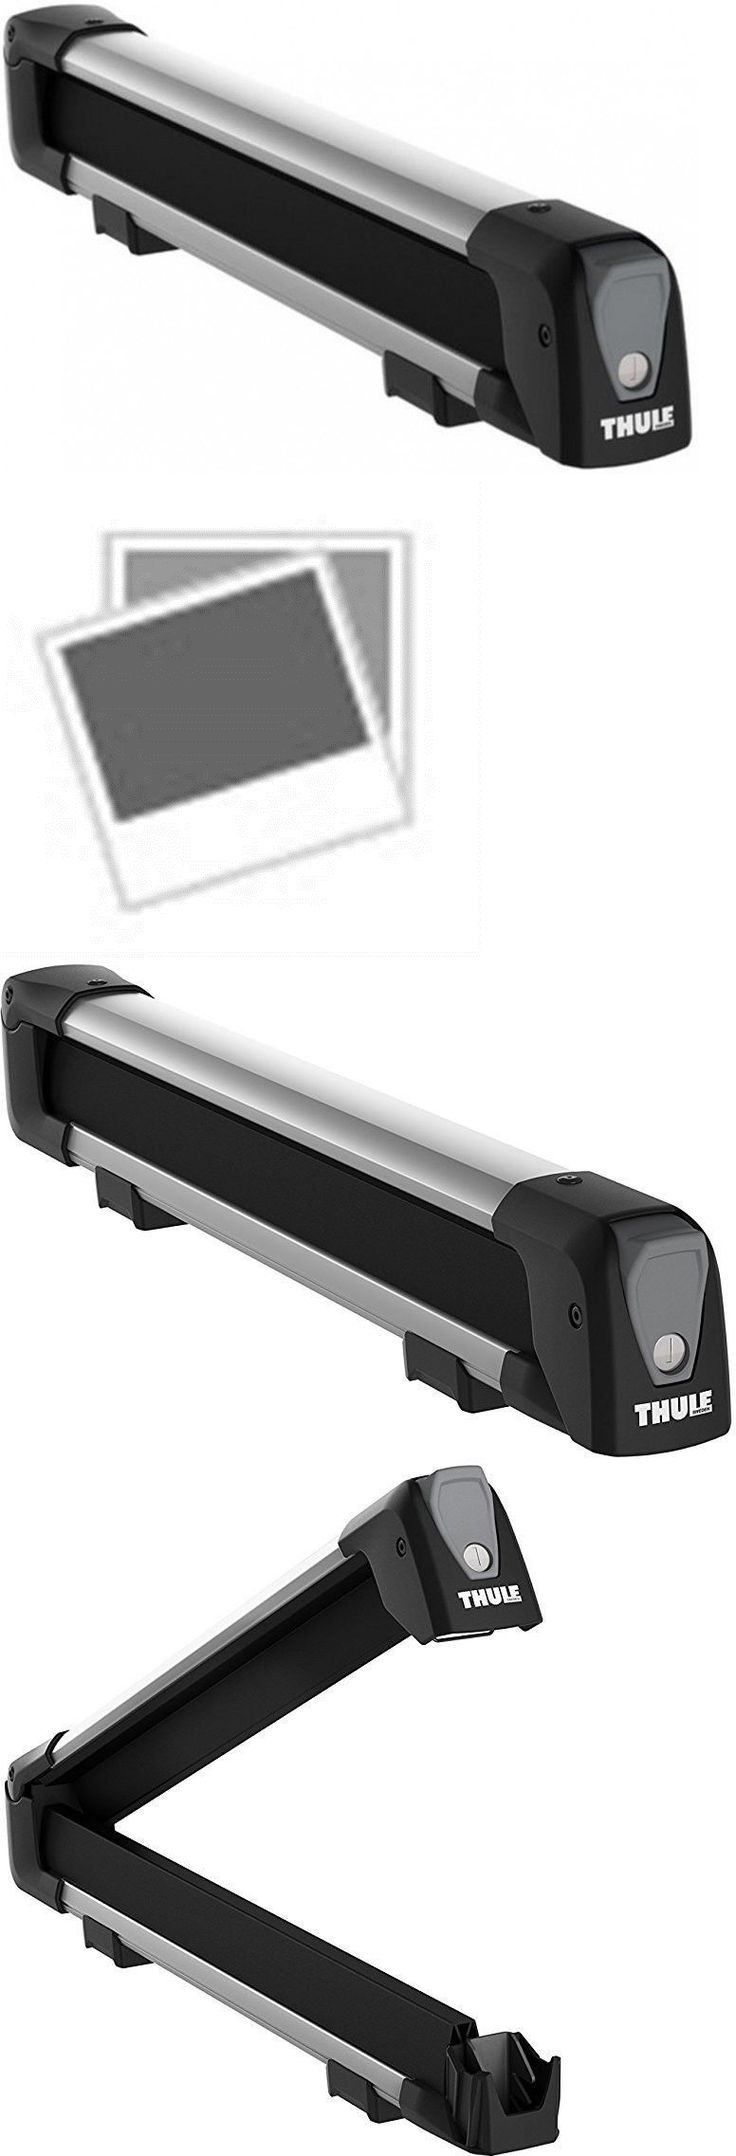 Racks and carriers 21231 thule ski snowboard carrier 4 pair open box